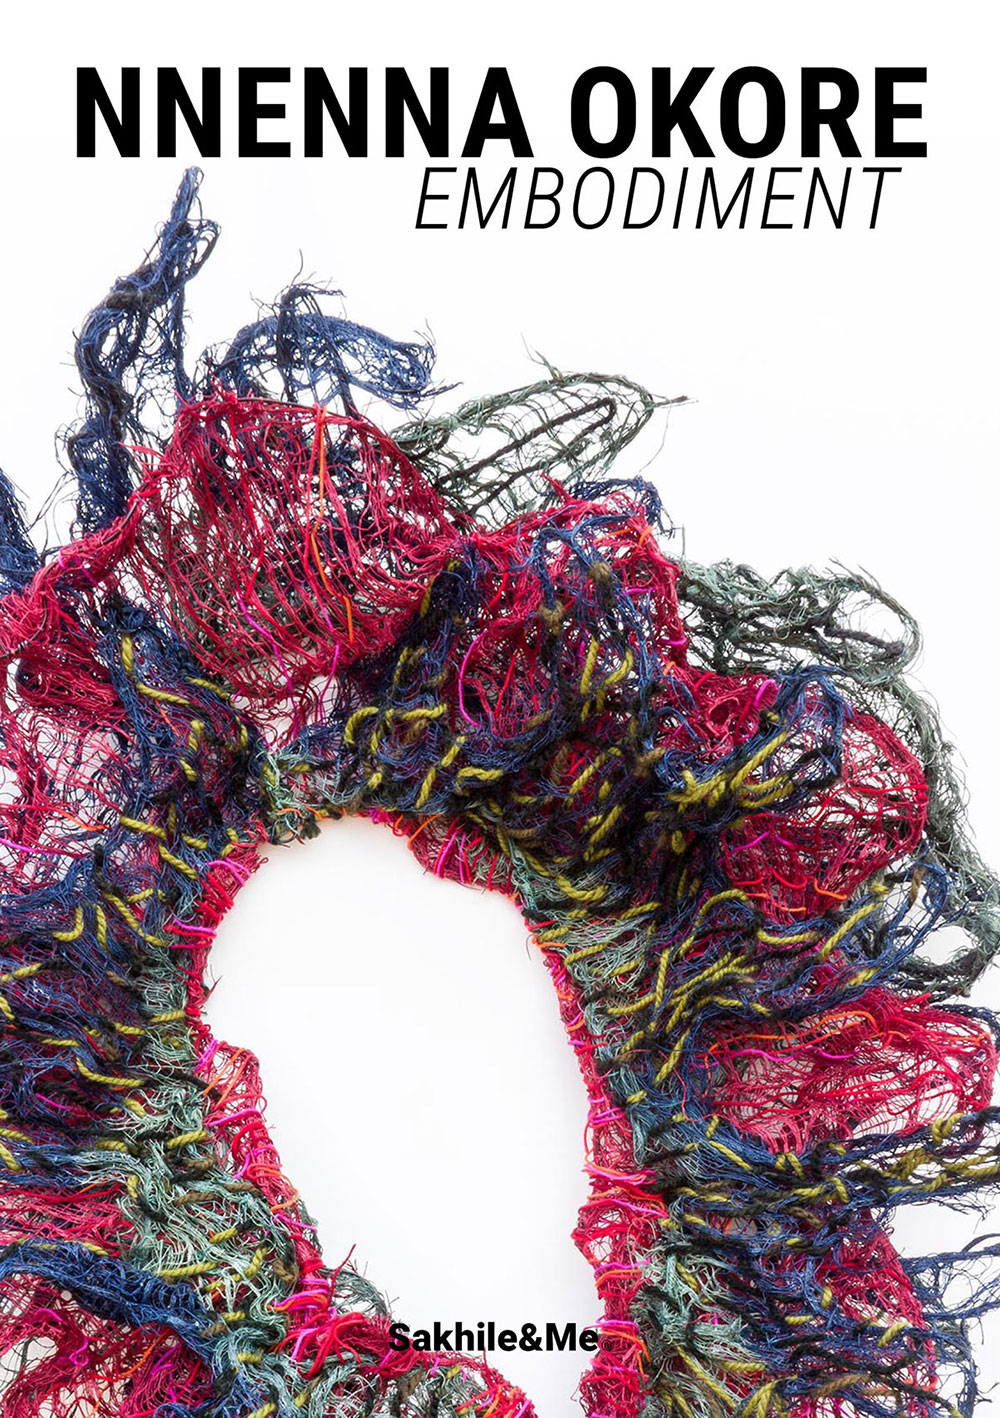 Nnenna Okore: Embodiment (Catalogue)